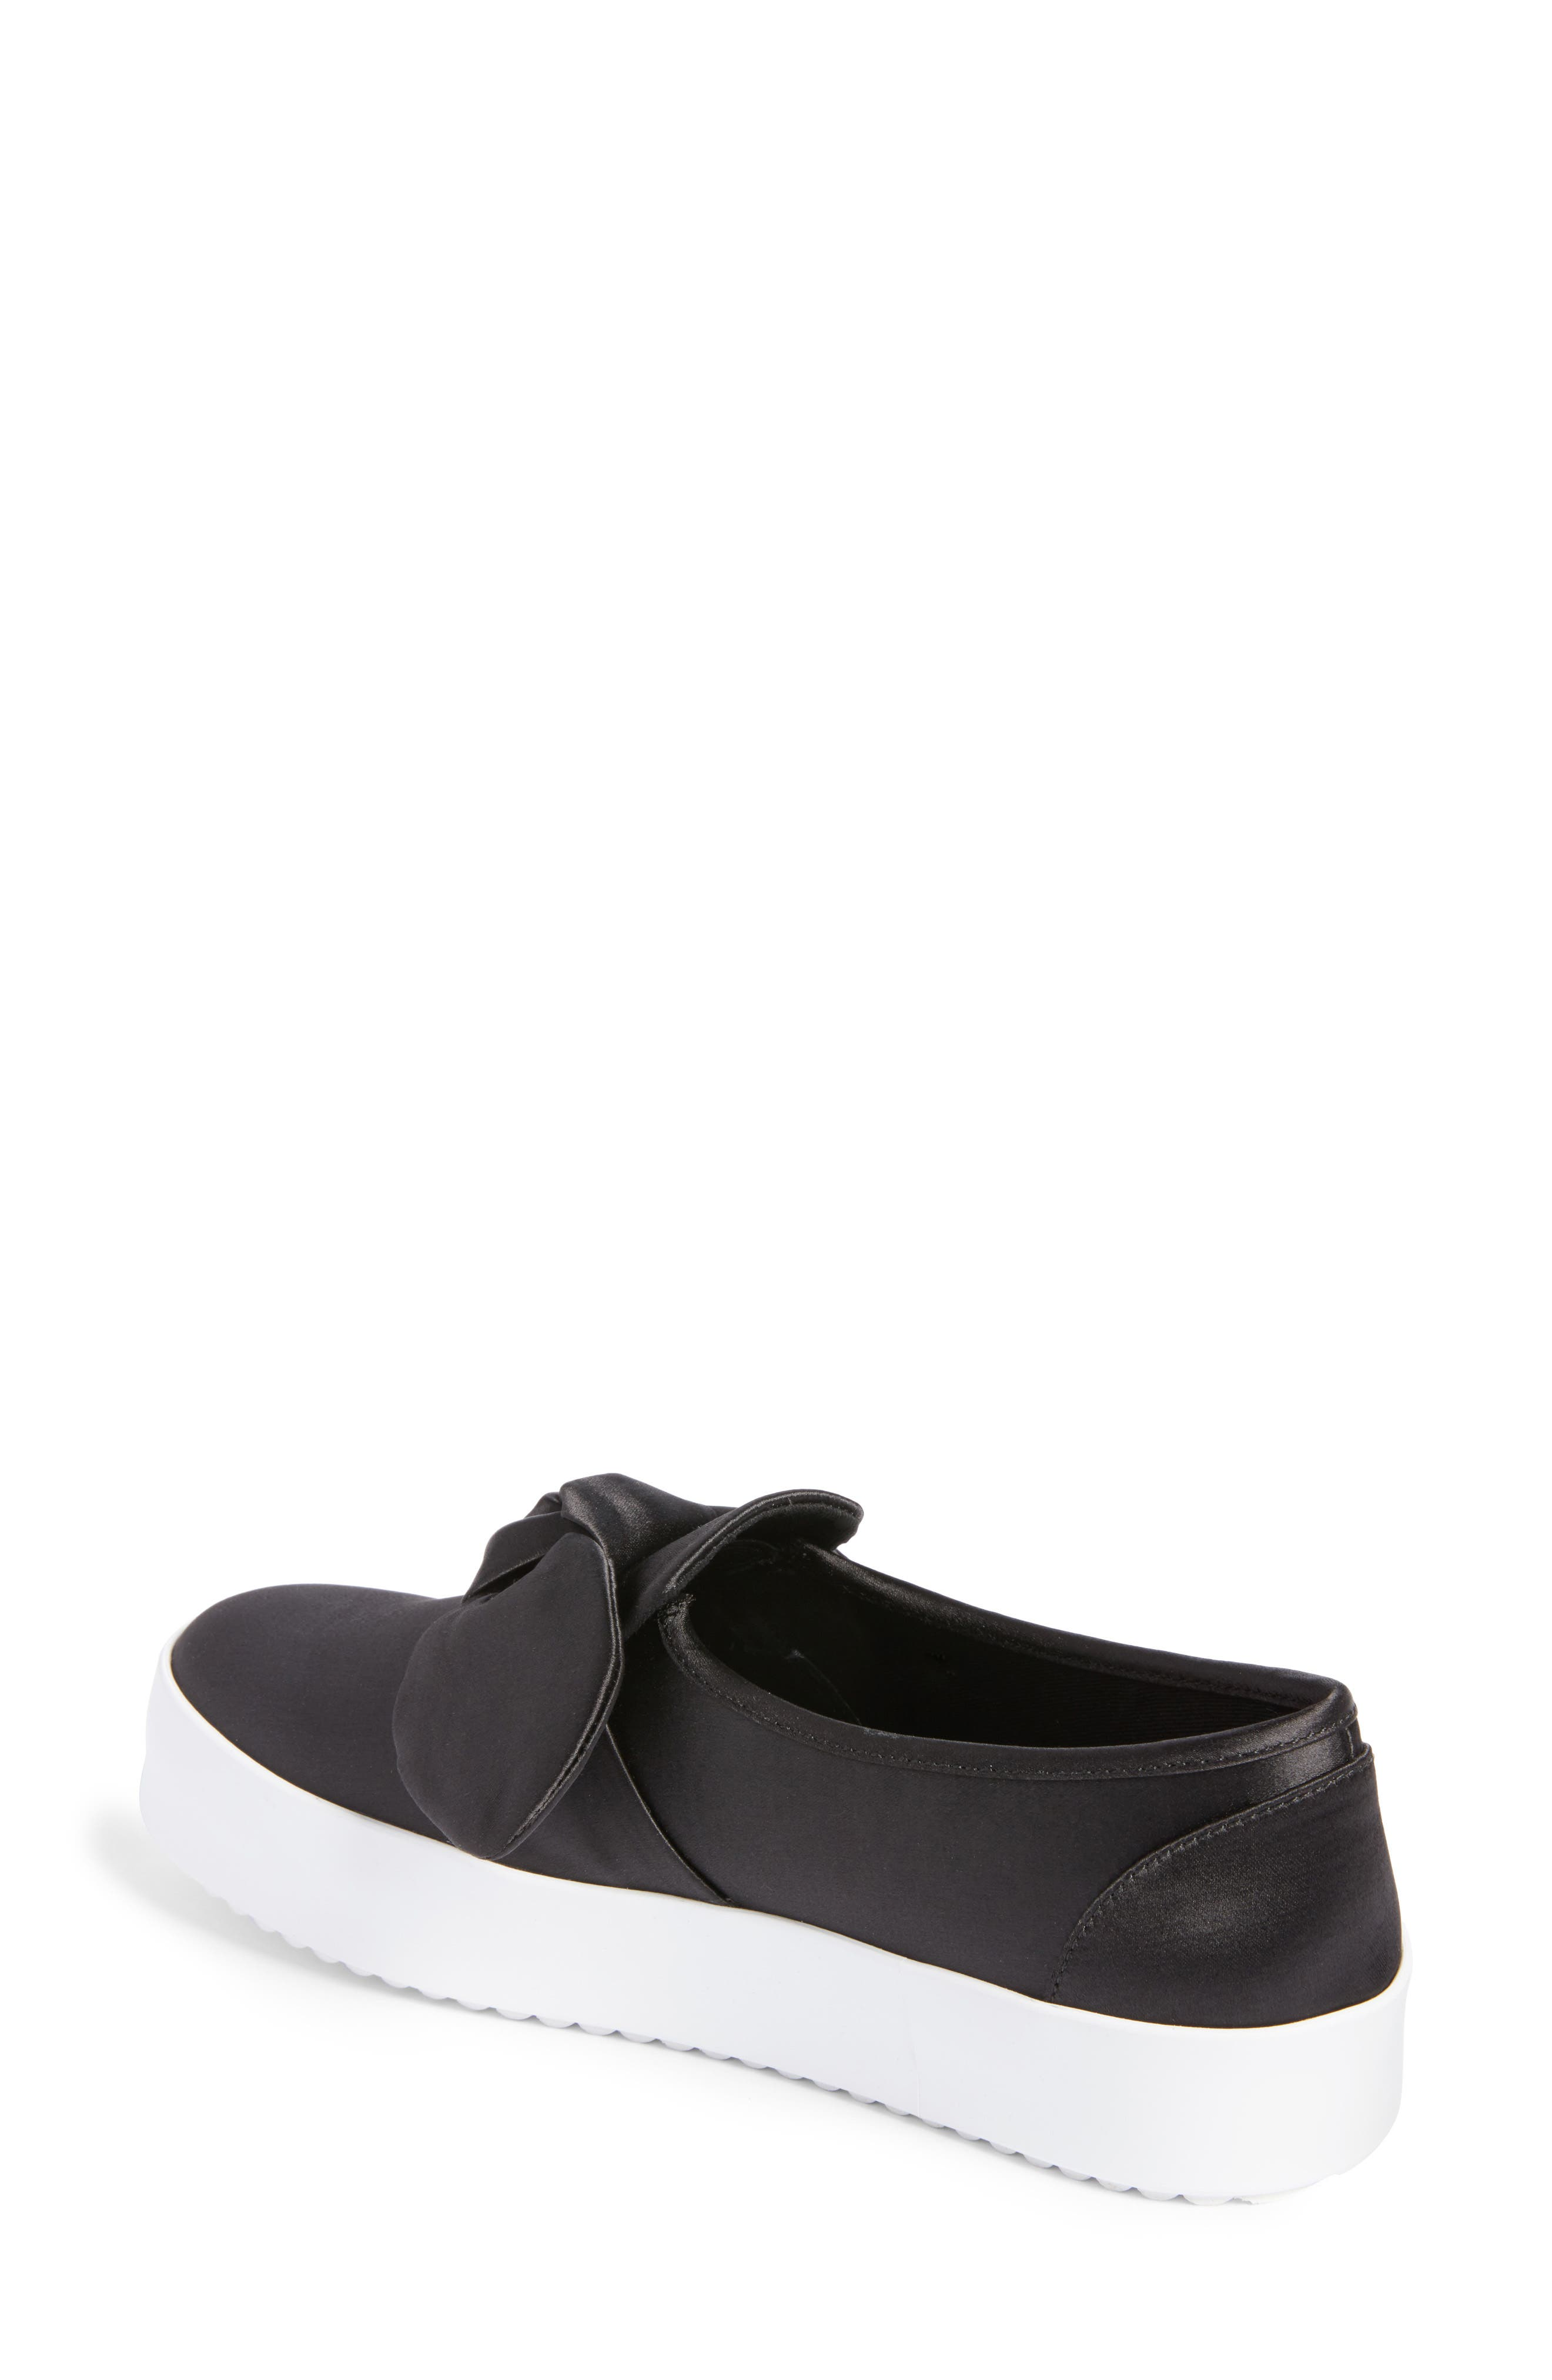 Stacey Bow Platform Sneaker,                             Alternate thumbnail 2, color,                             002